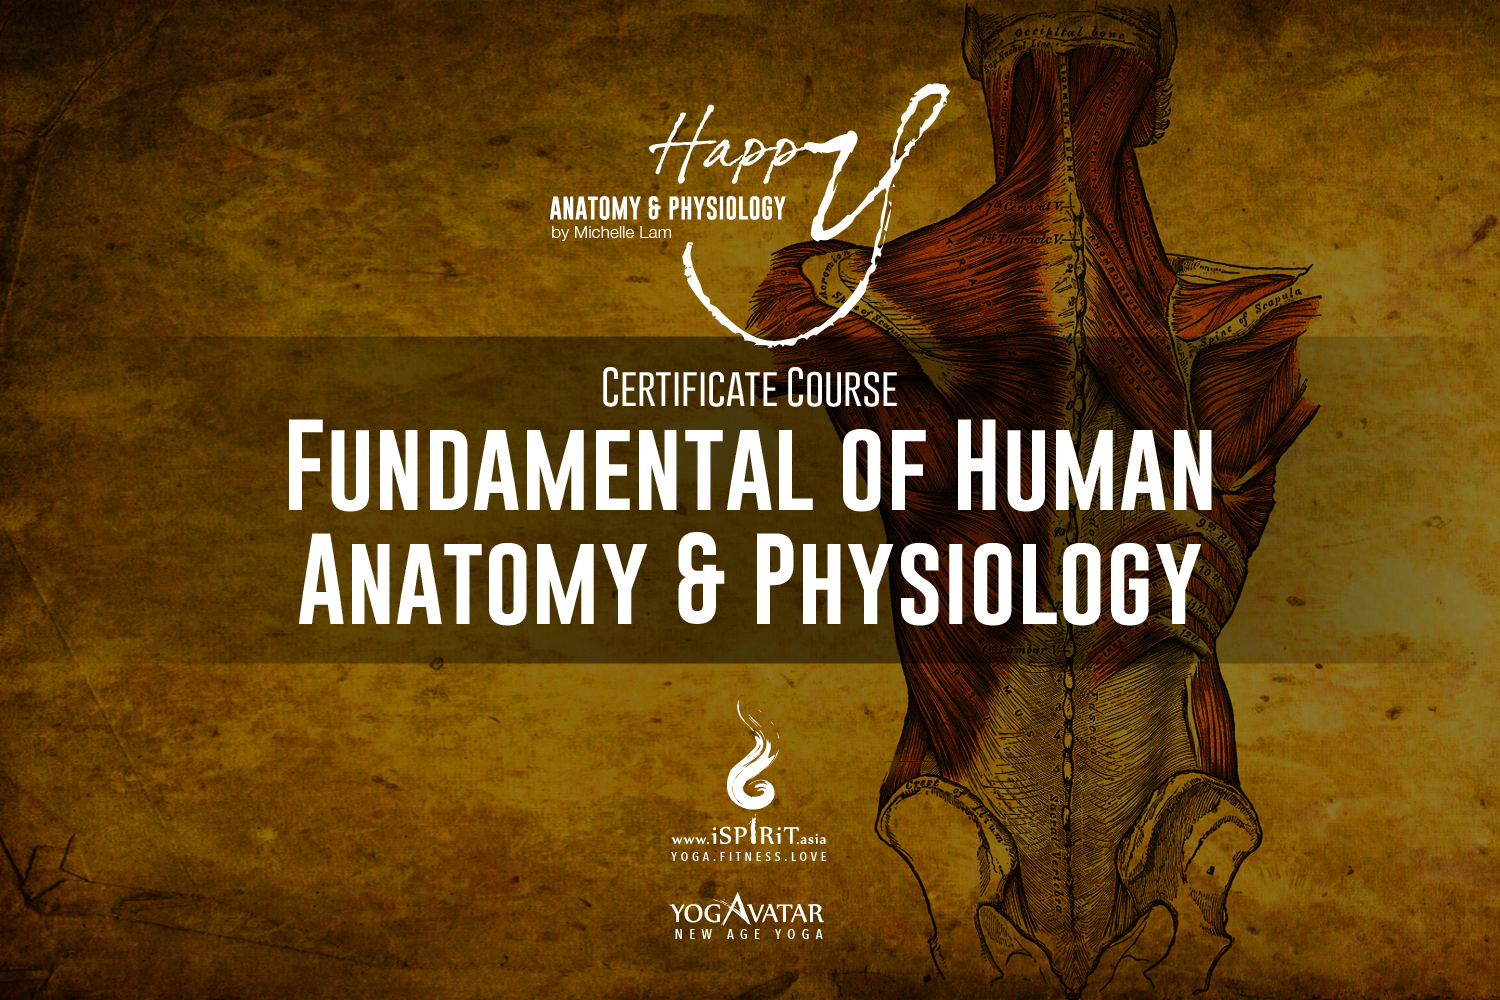 Happy Anatomy & Physiology Certificate Courses by Michelle Lam